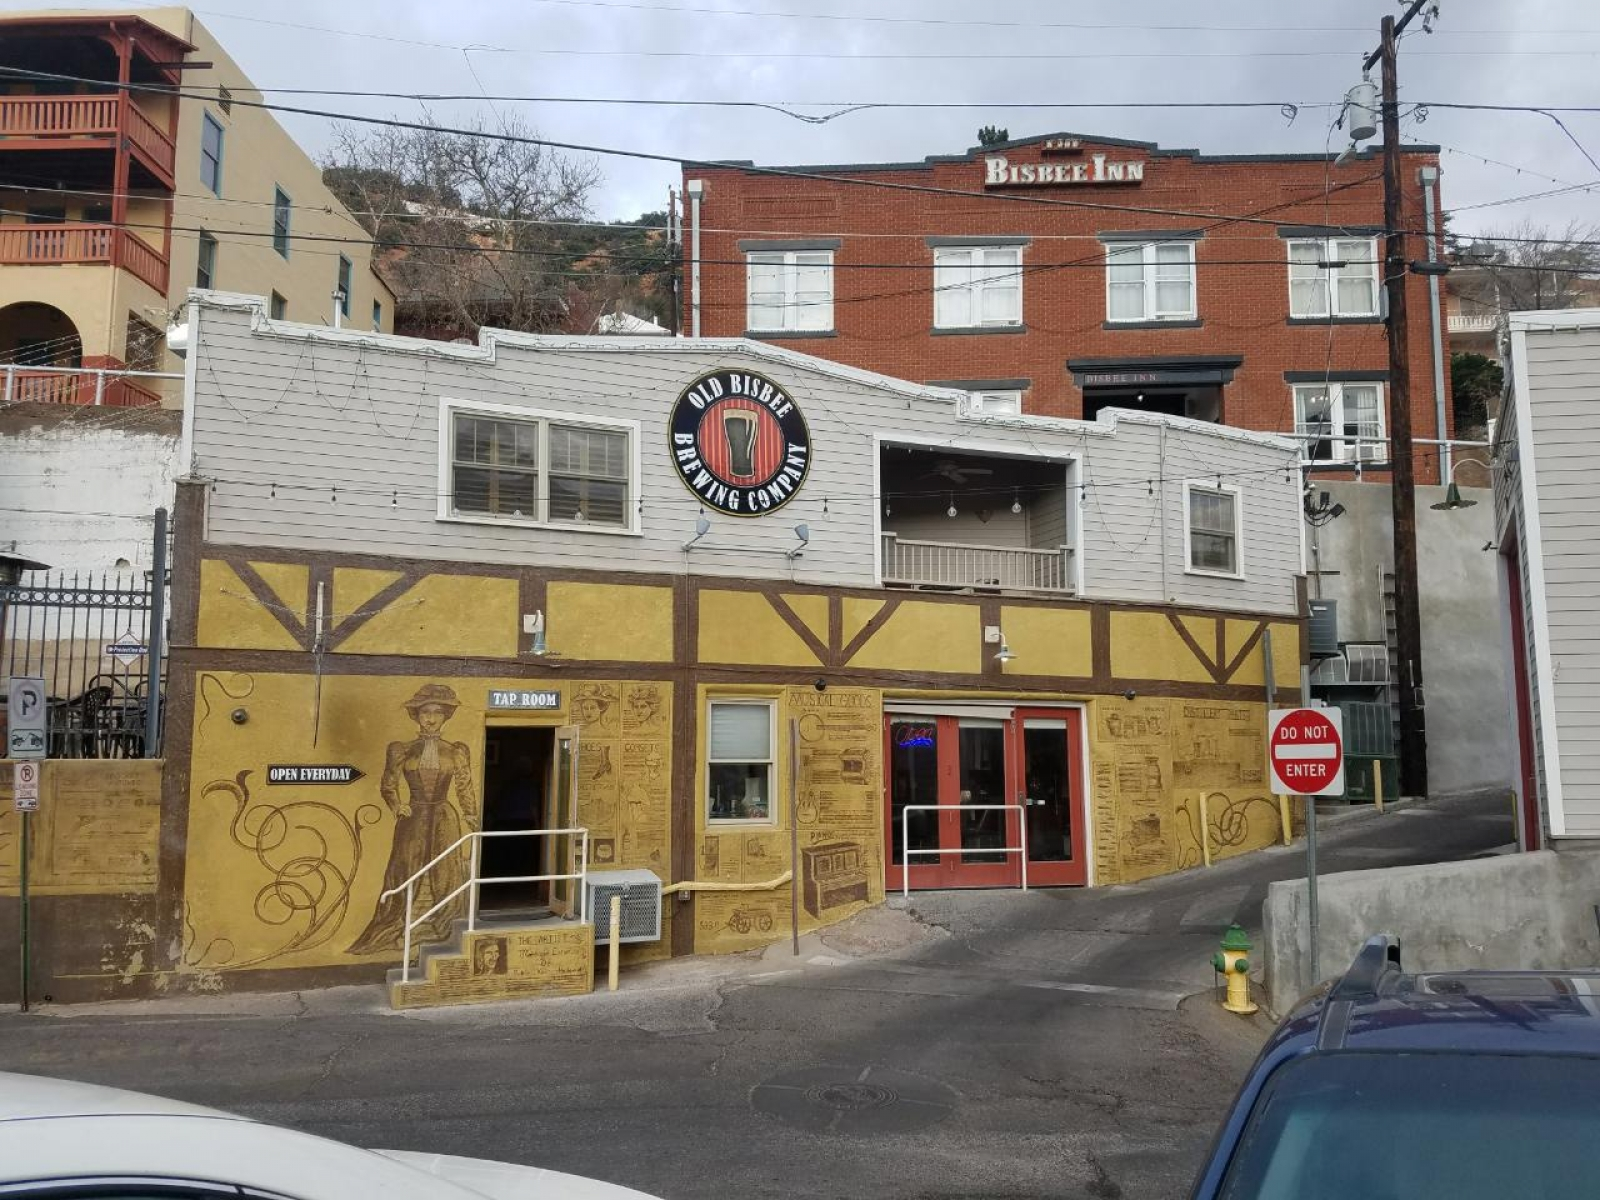 Old Bisbee Brewery tap house